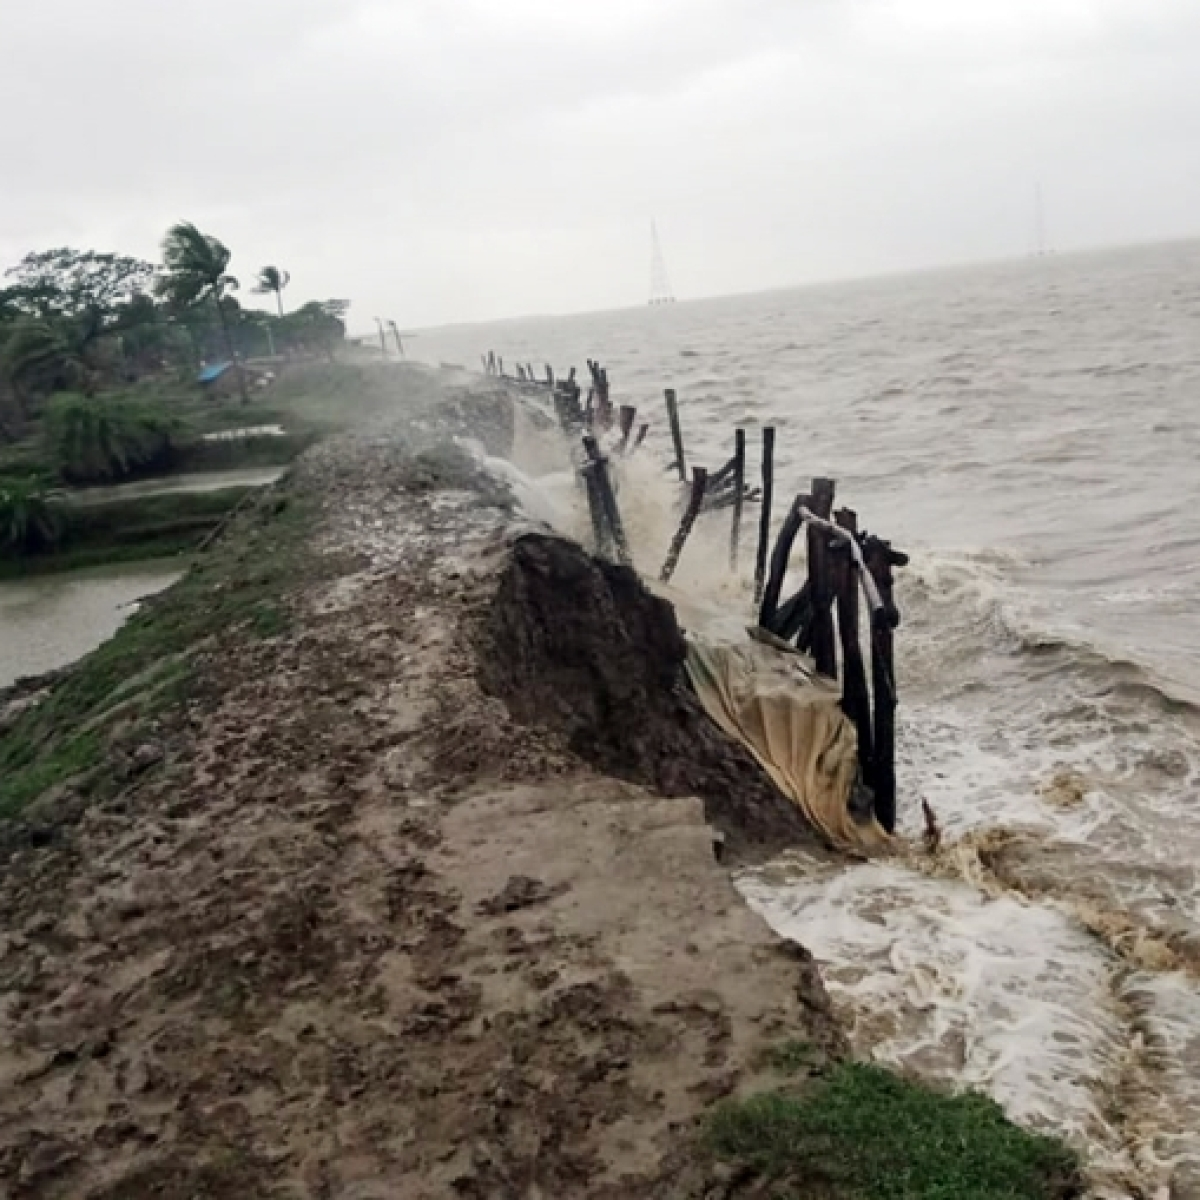 72 dead as Cyclone Amphan wreaks havoc in West Bengal; Mamata announces Rs 2.5 lakh ex-gratia